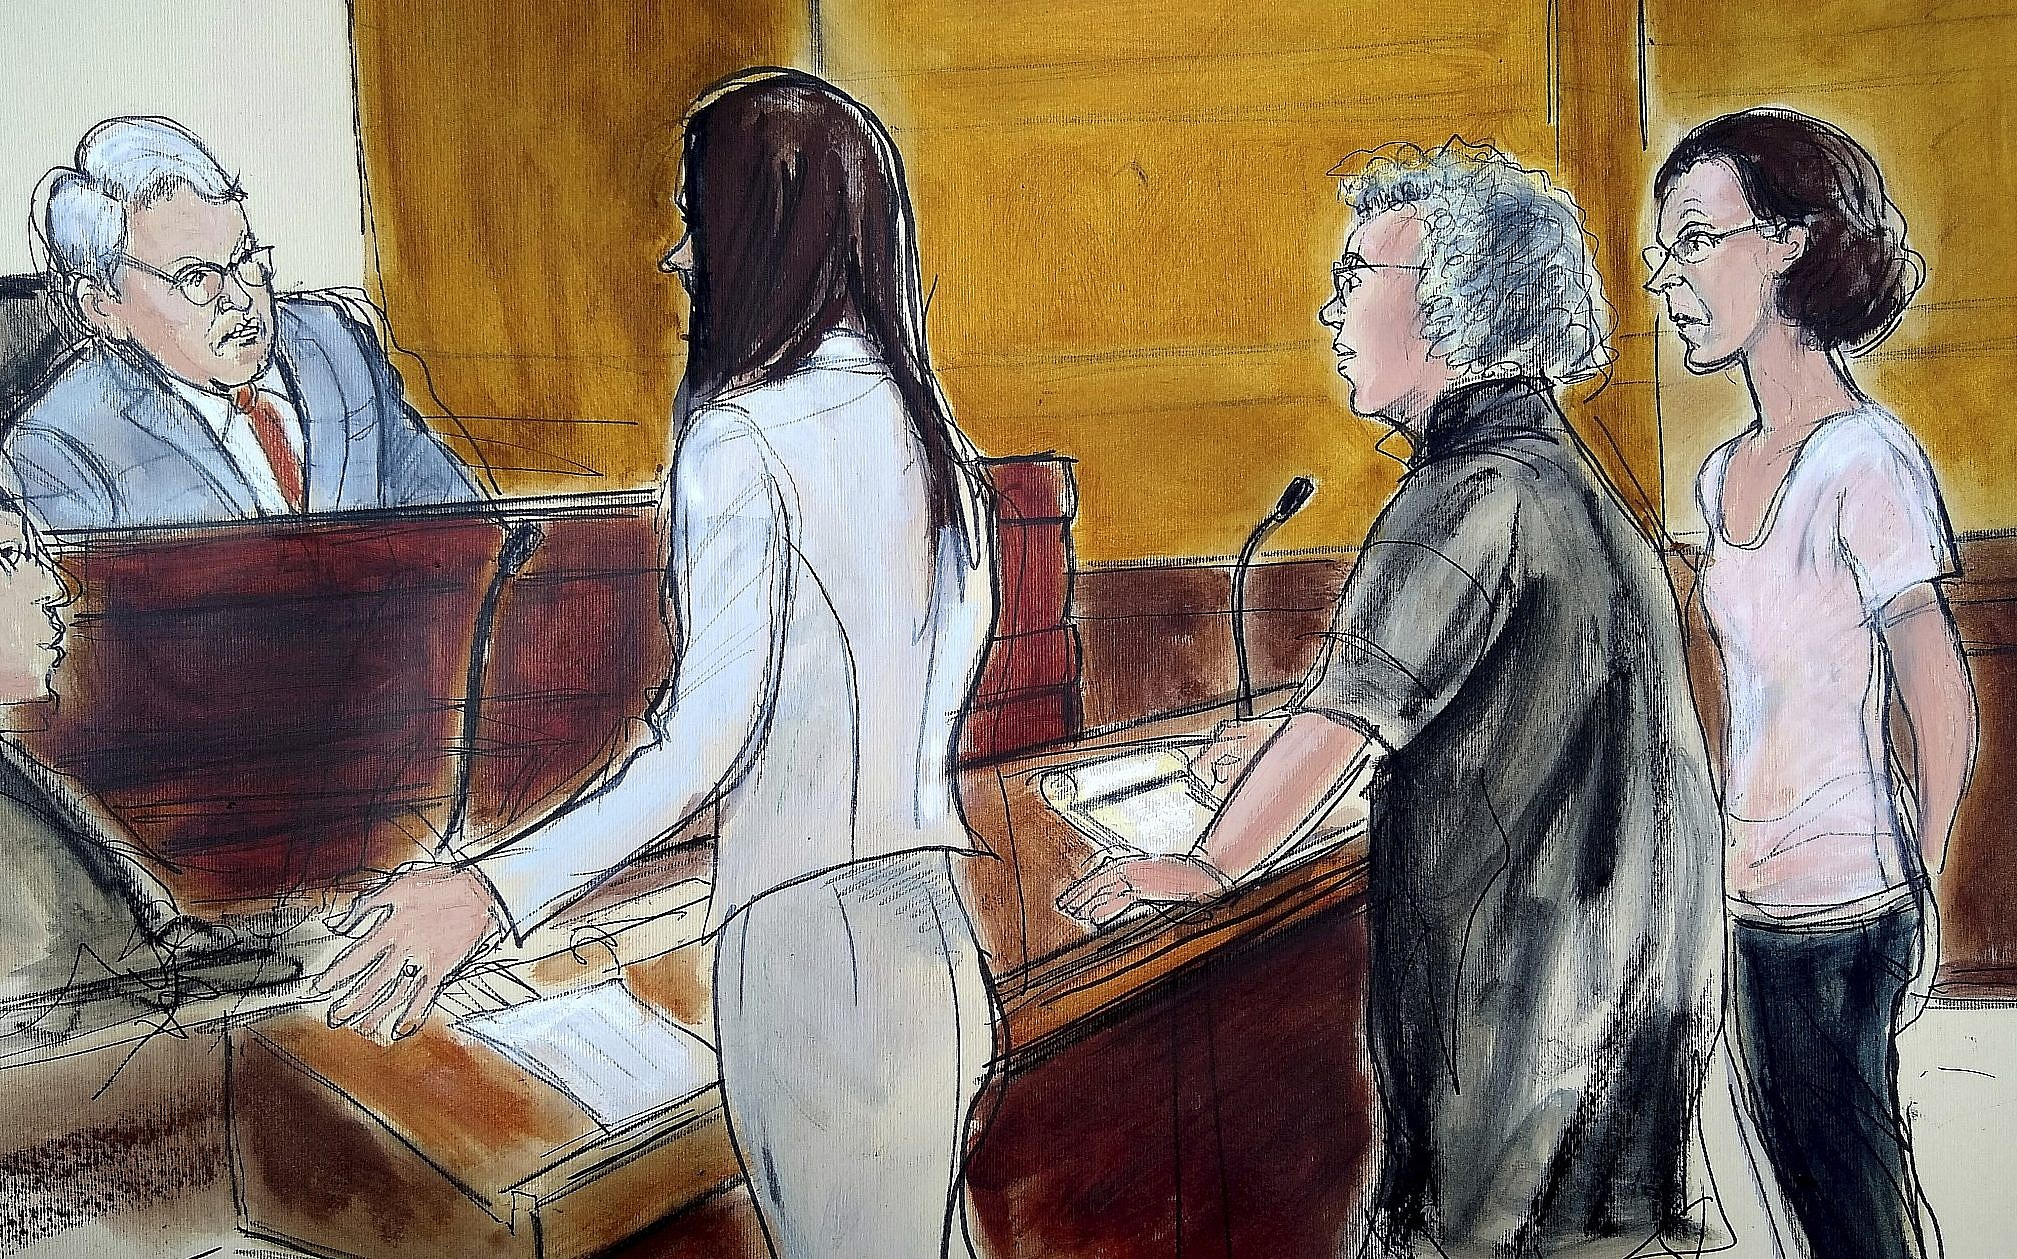 Seagram's heiress forks over $100M bond after Nxivm arrest